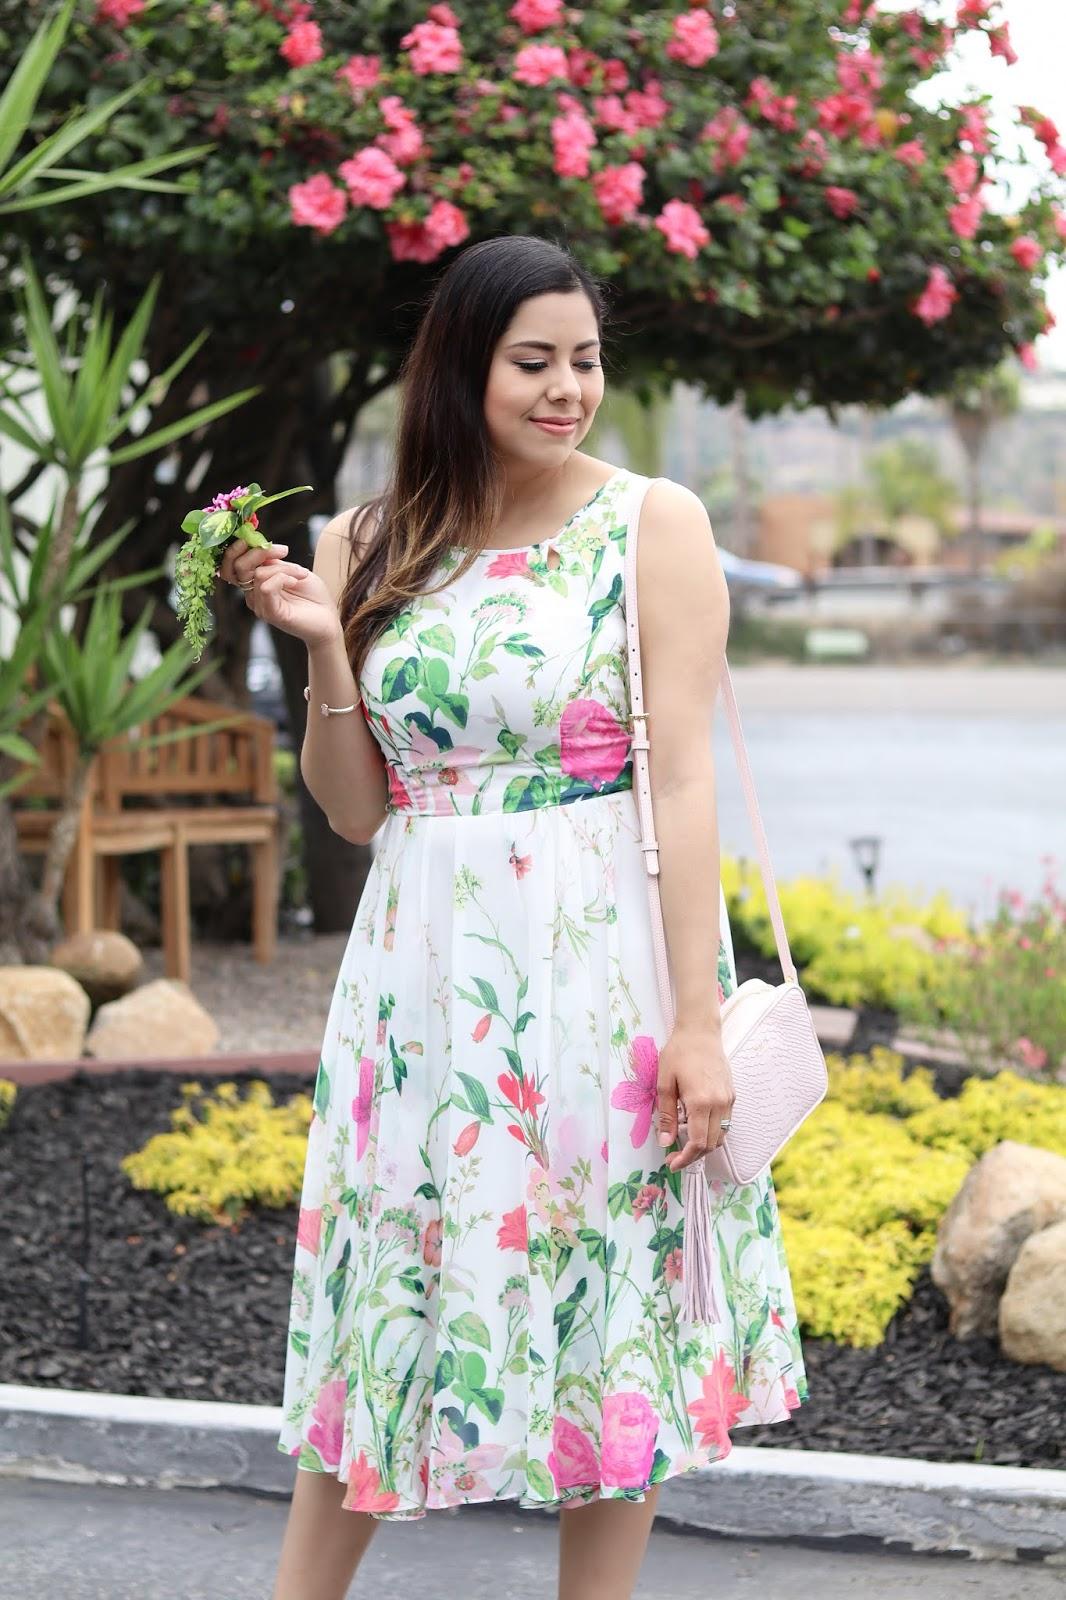 pink and green floral dress, brunette fashion blogger